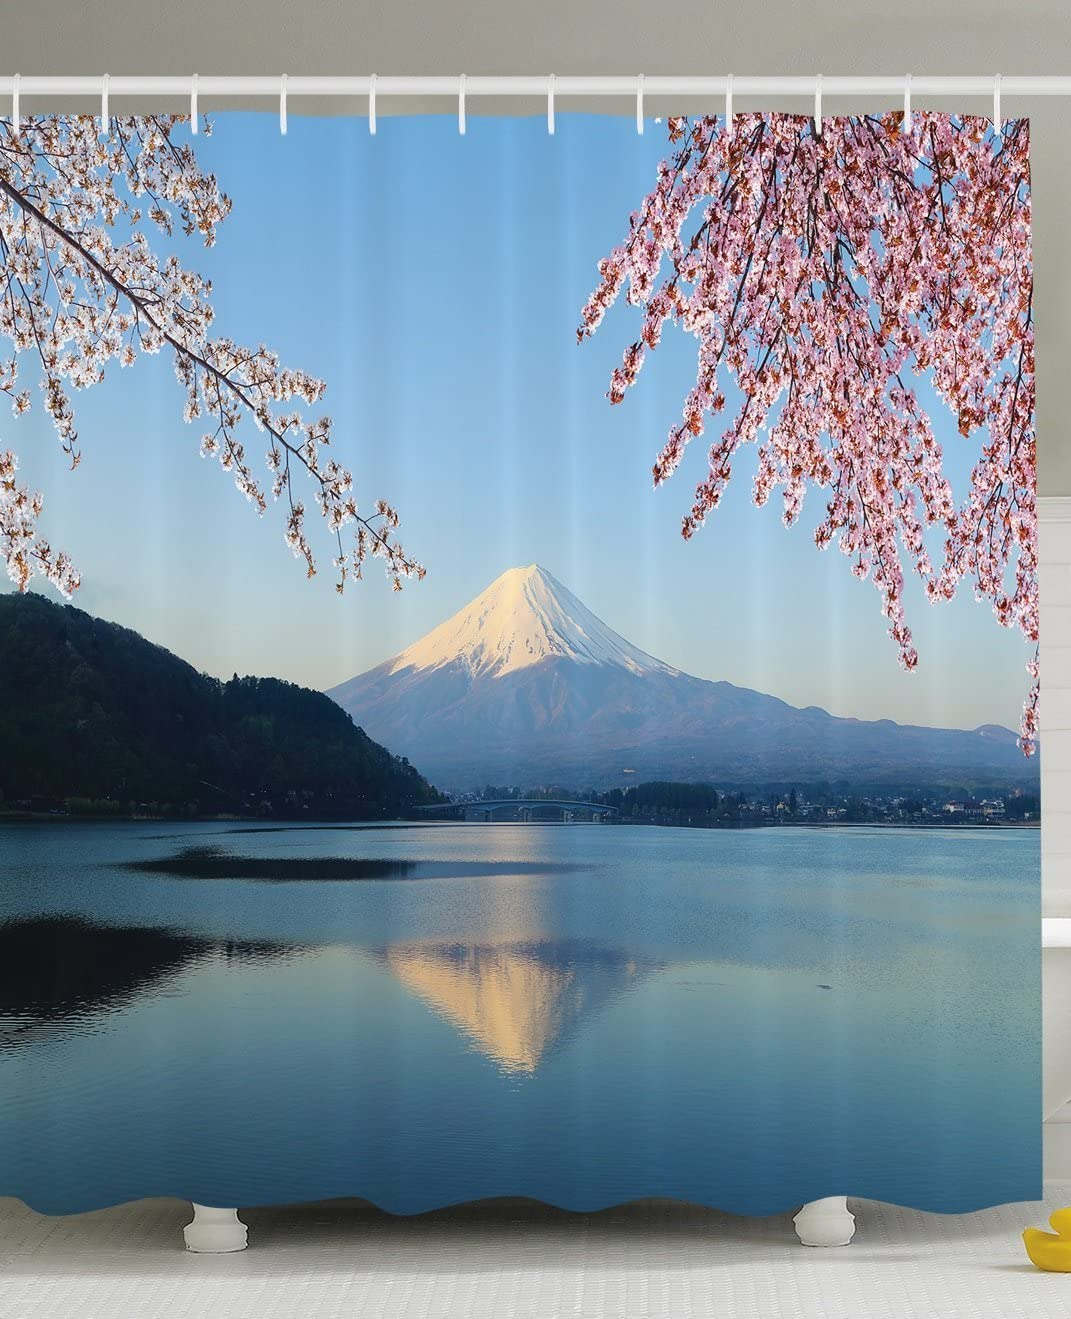 Spring Decor Shower Curtain by Ambesonne, Cherry Blossoms Sakura Snowy Mountain Fuji Lake View Picture Print, Polyester Fabric Bathroom Set with Hooks, 69 X 70 Inches, Blue Pink and White